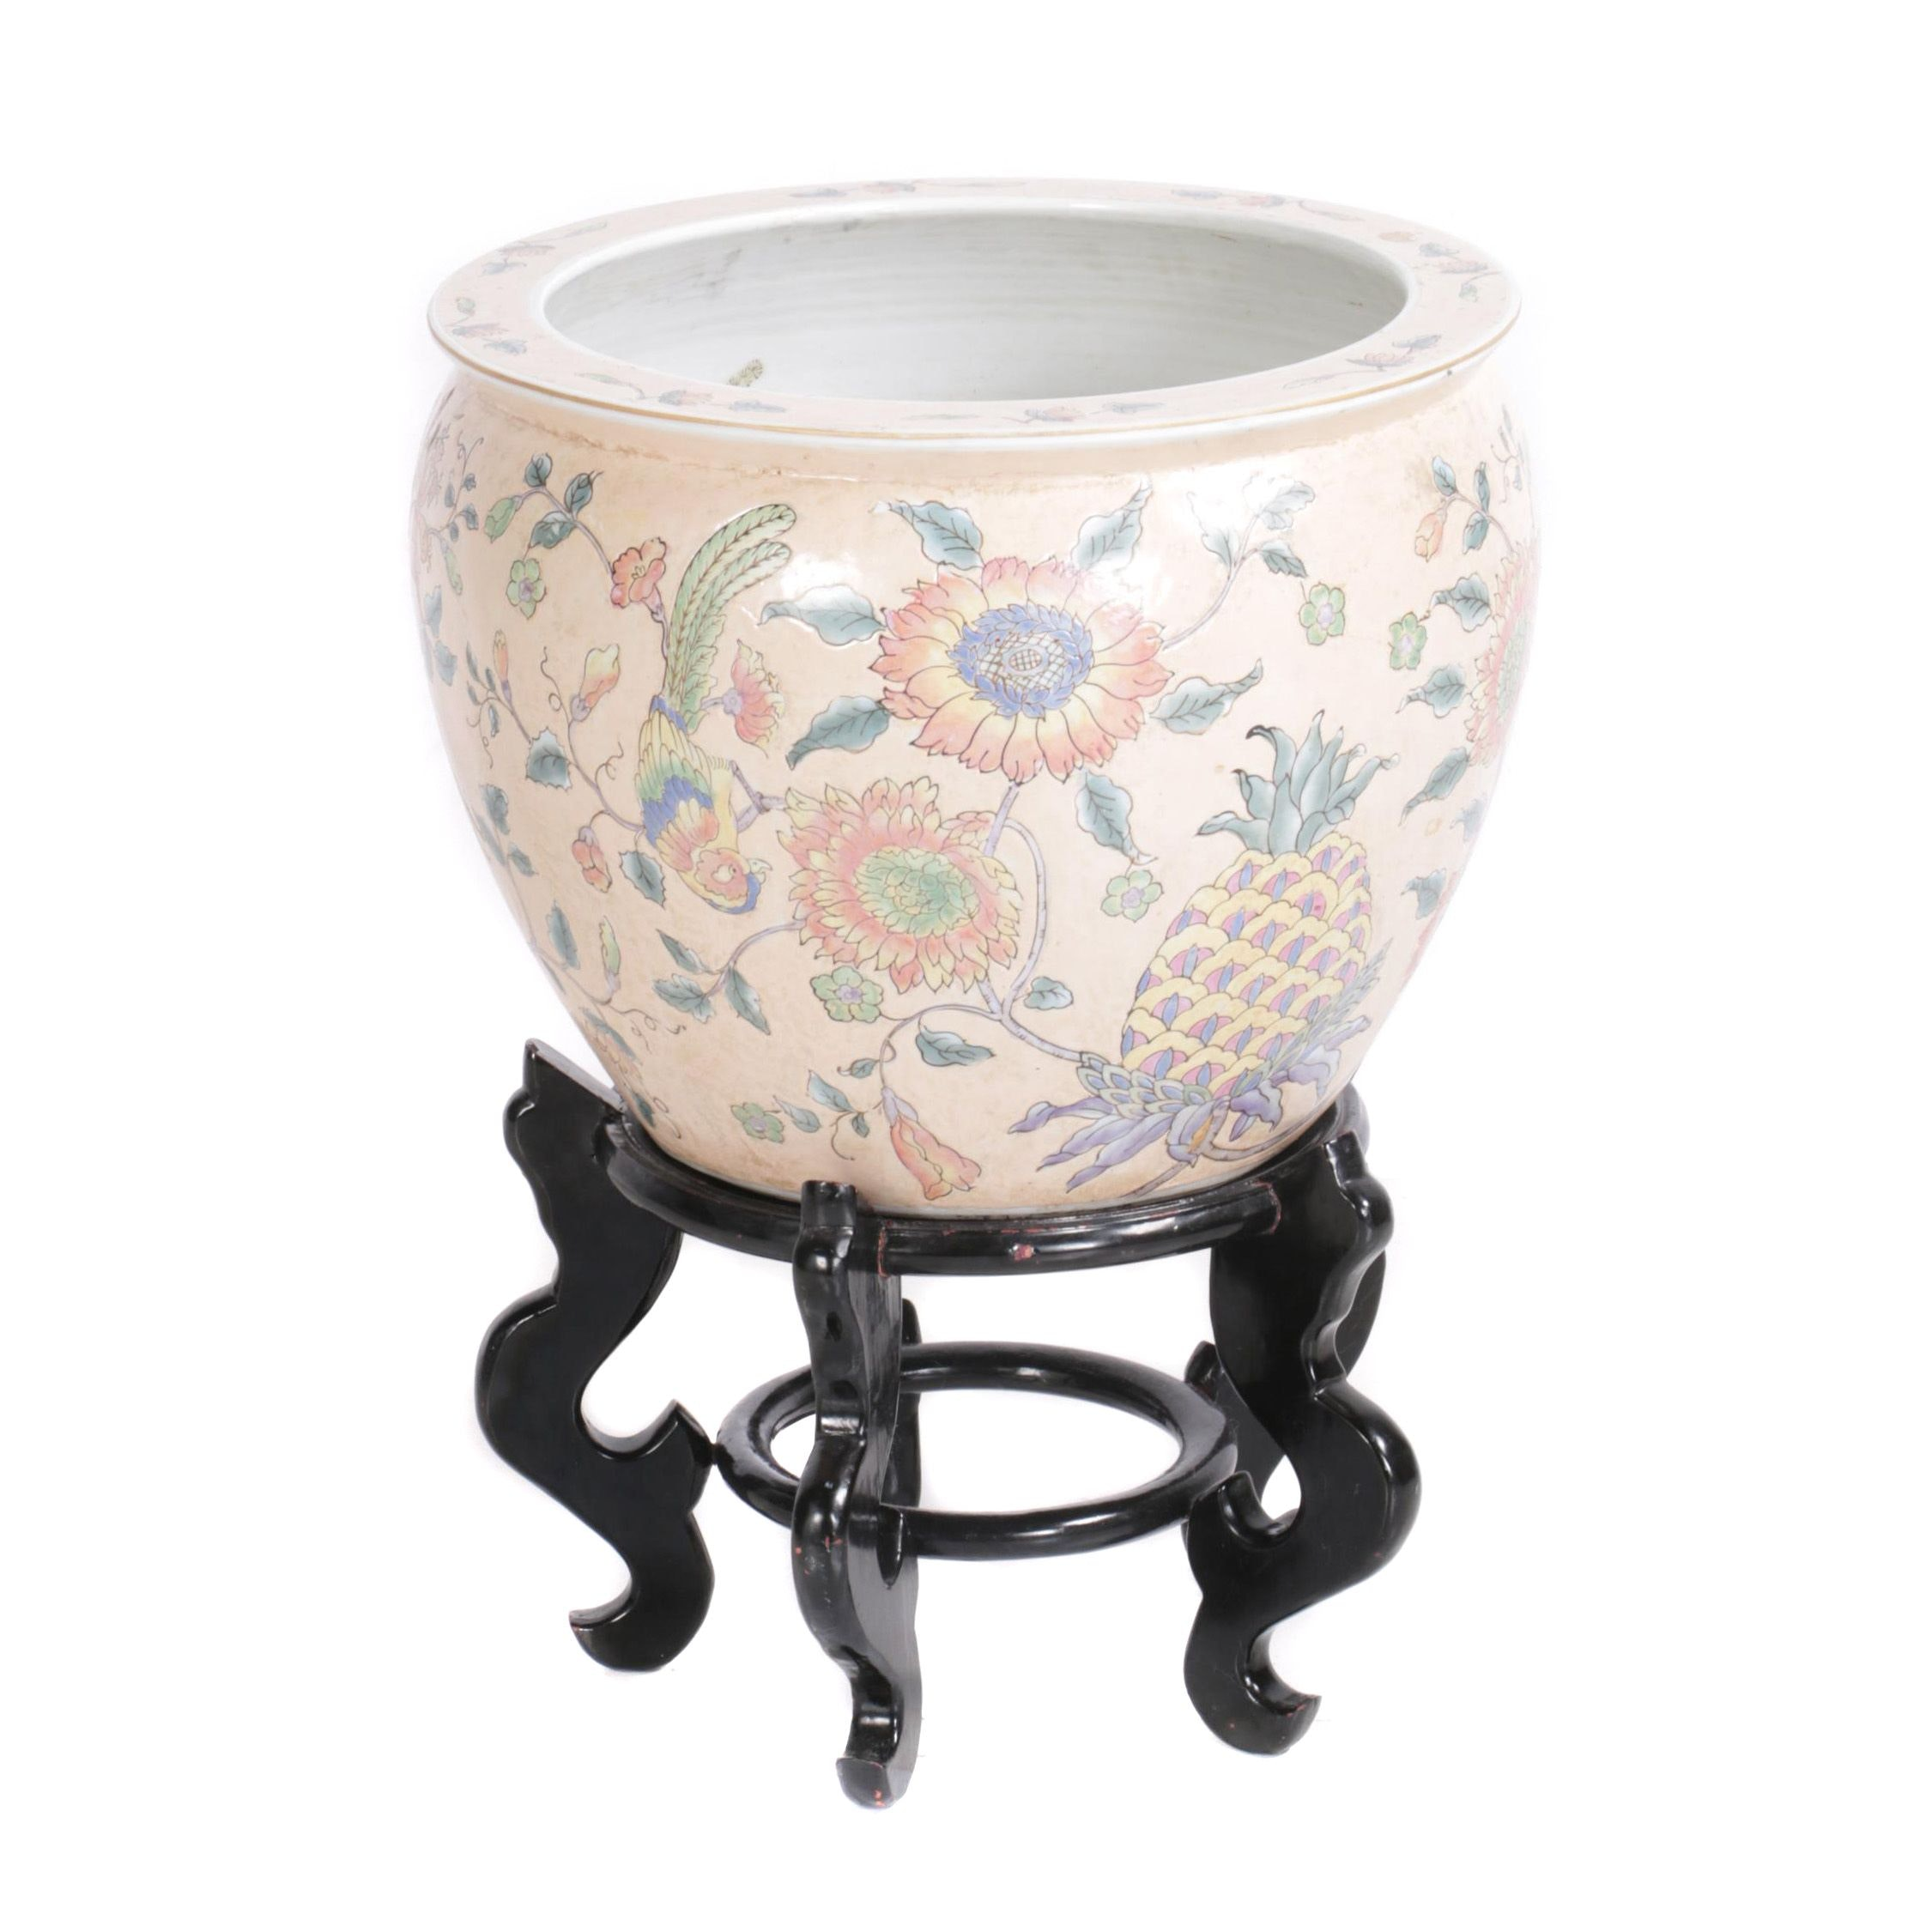 Decorative Asian Porcelain Fish Bowl Planter with Stand